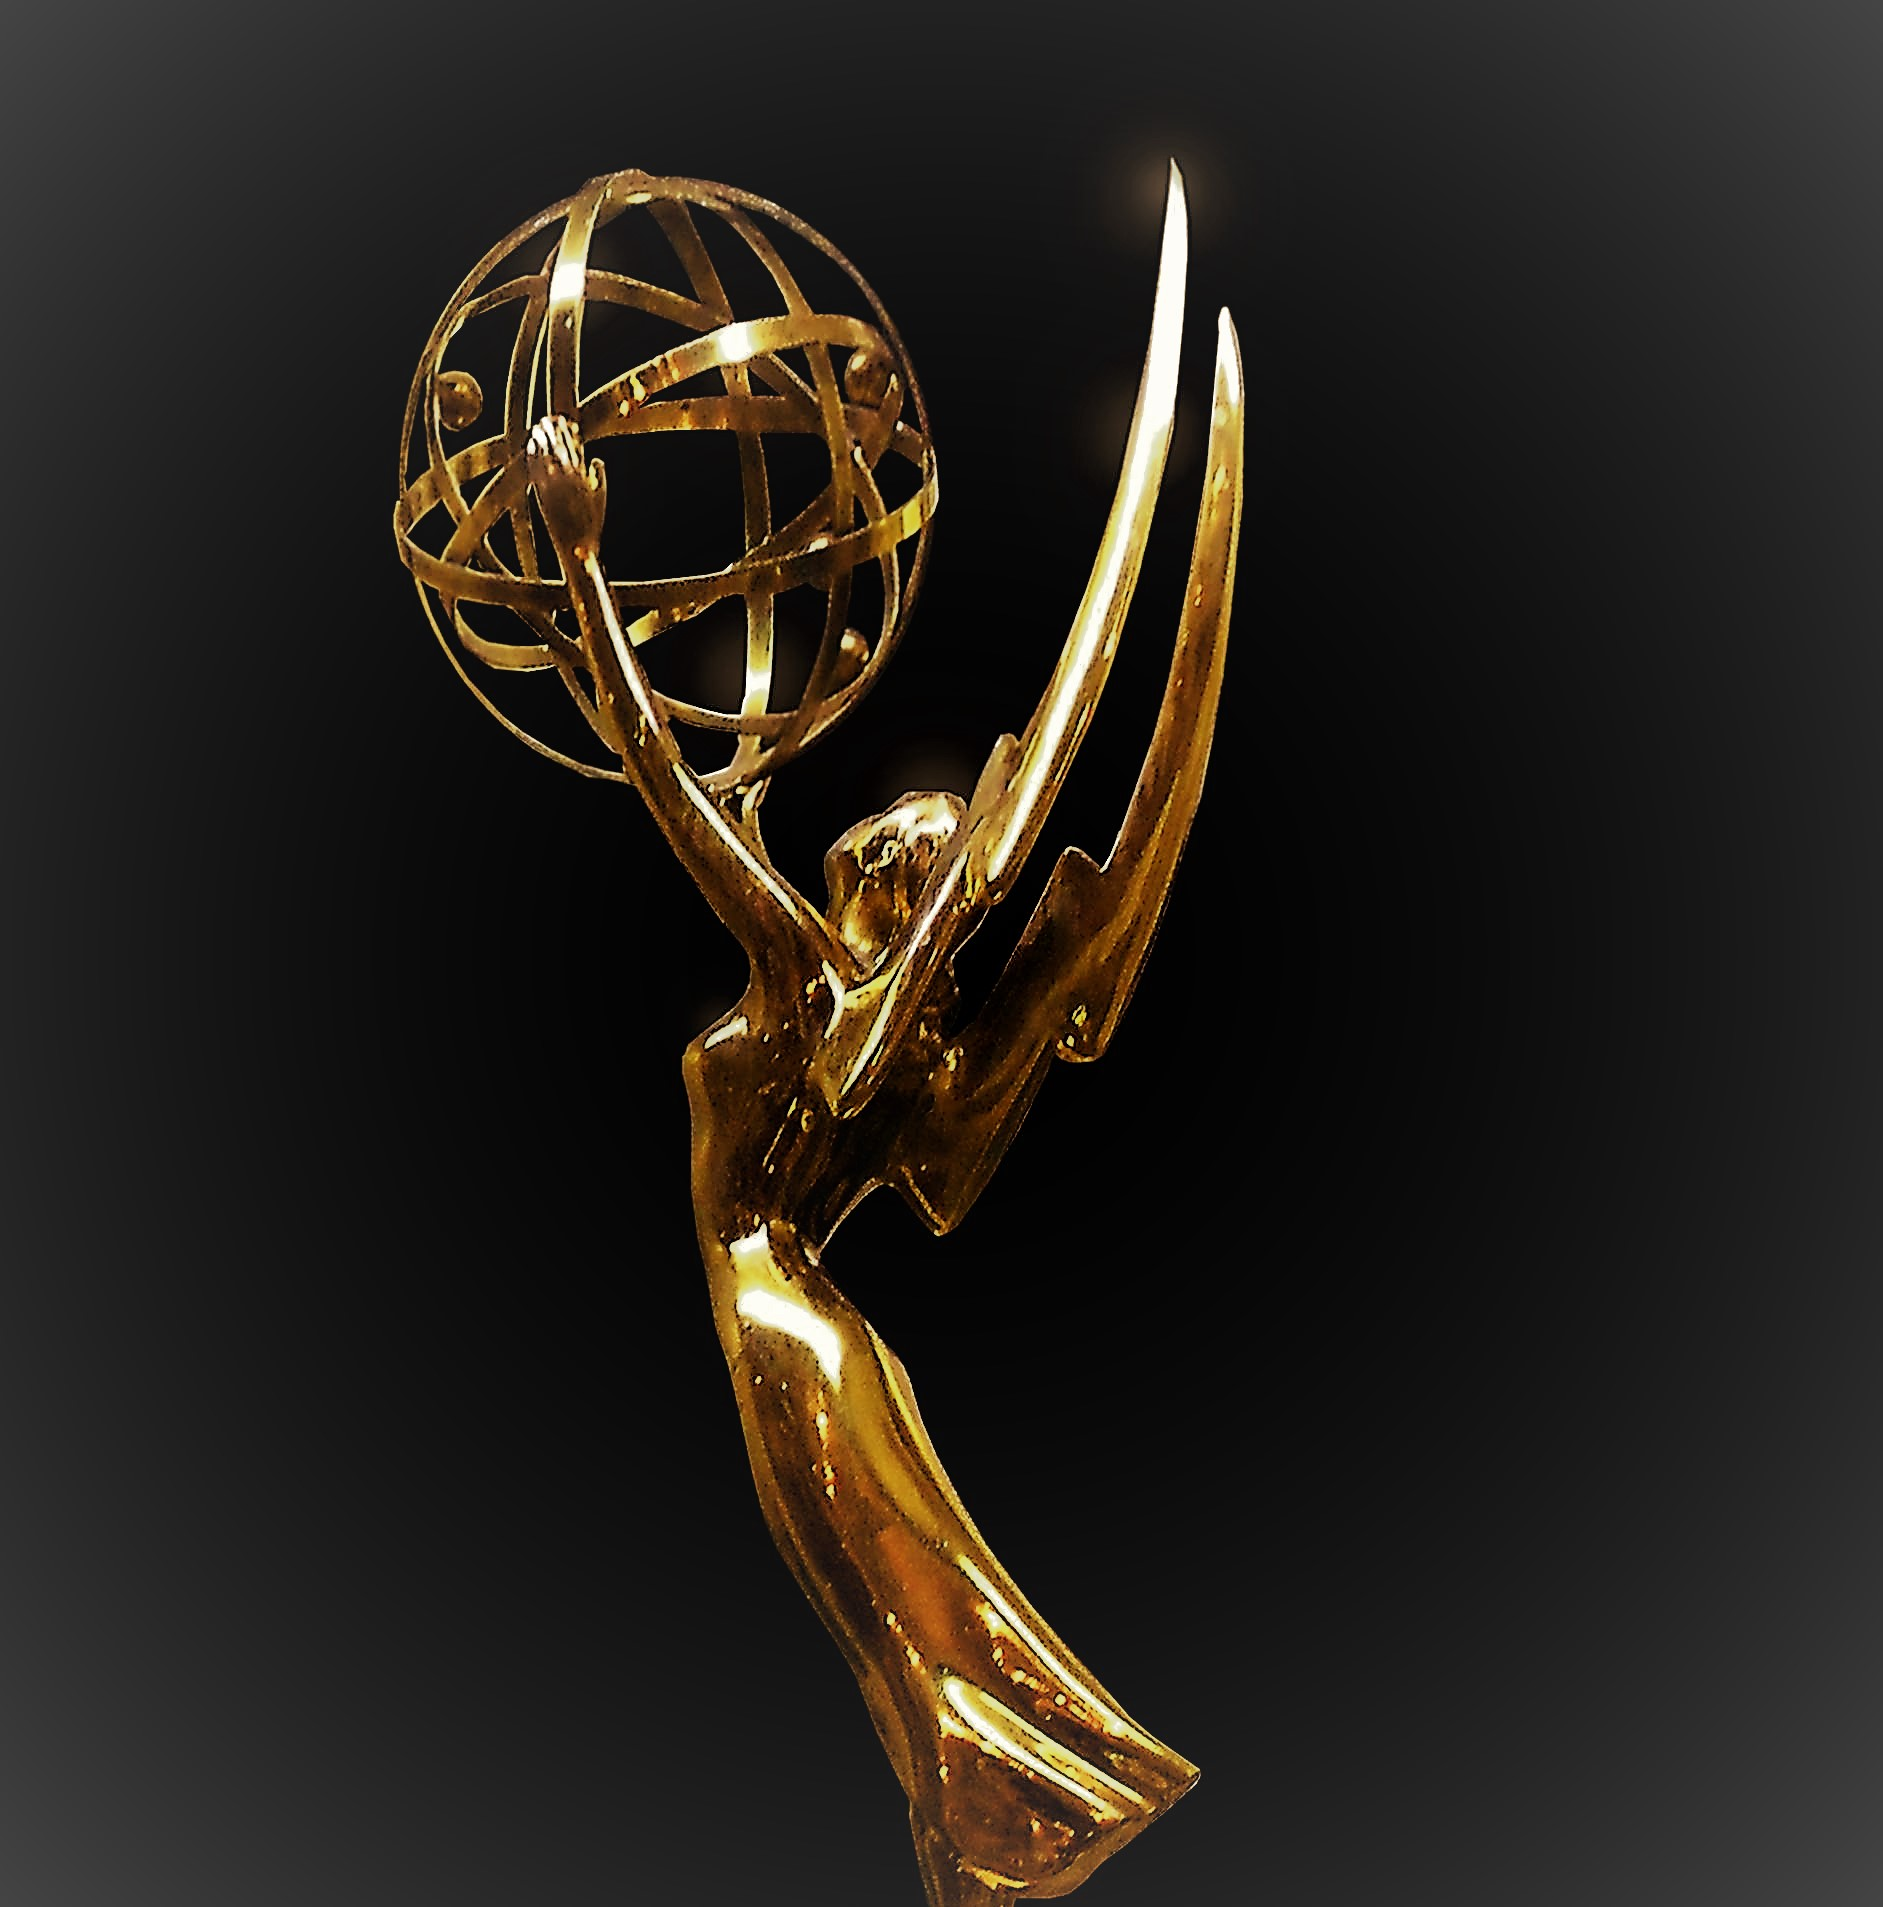 Where is Daly's damn emmy?